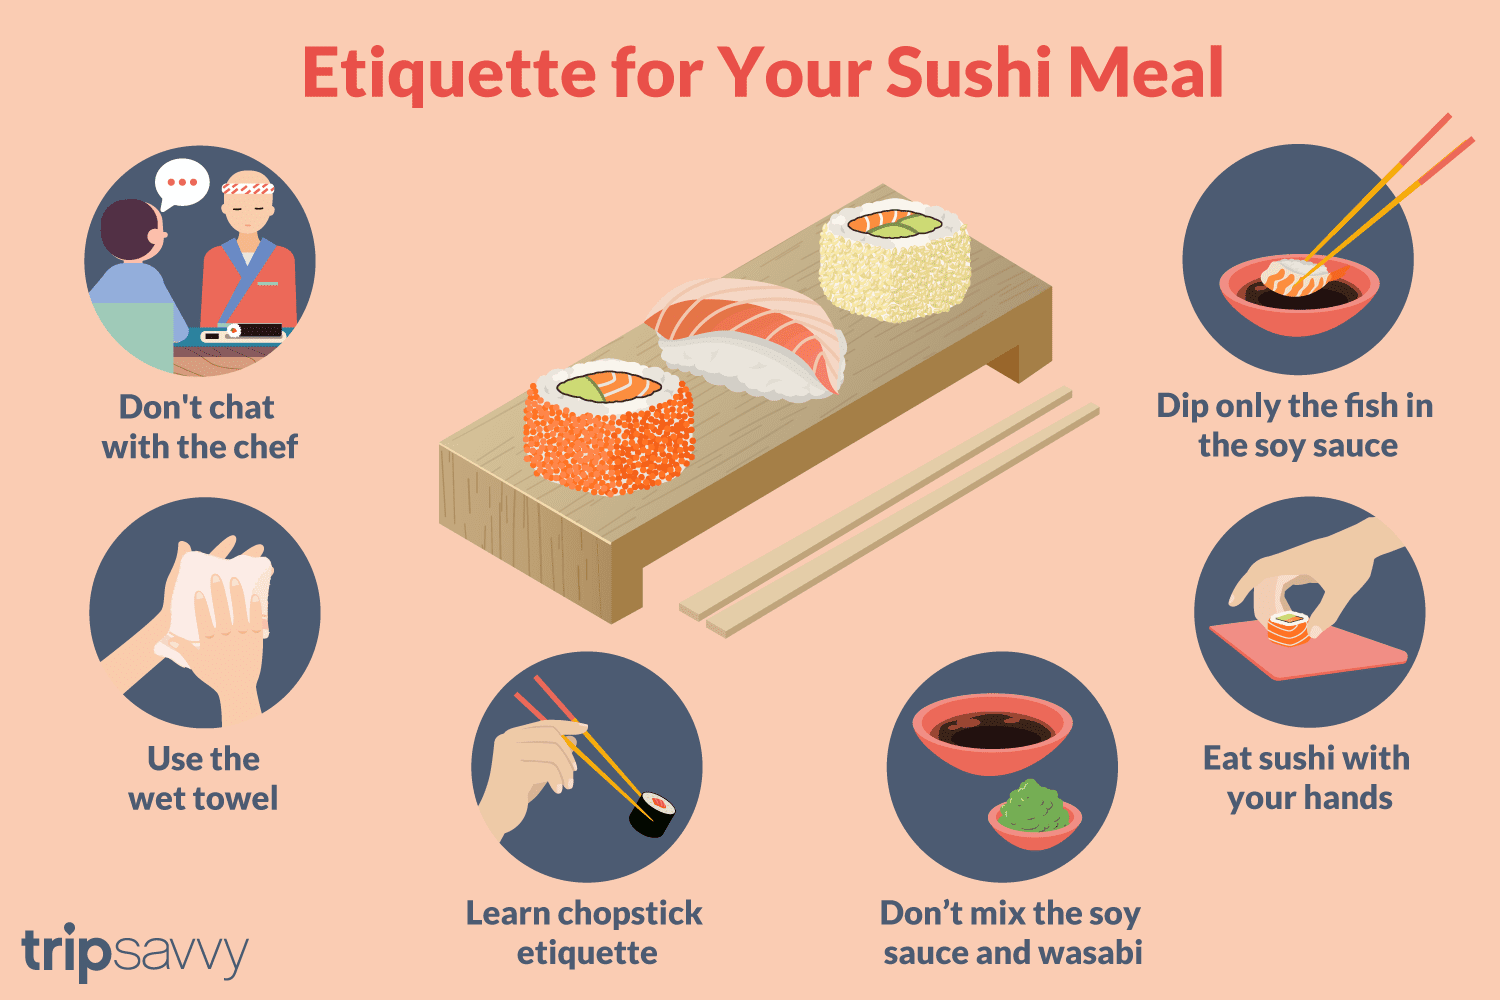 Etiquette for Your Sushi Meal